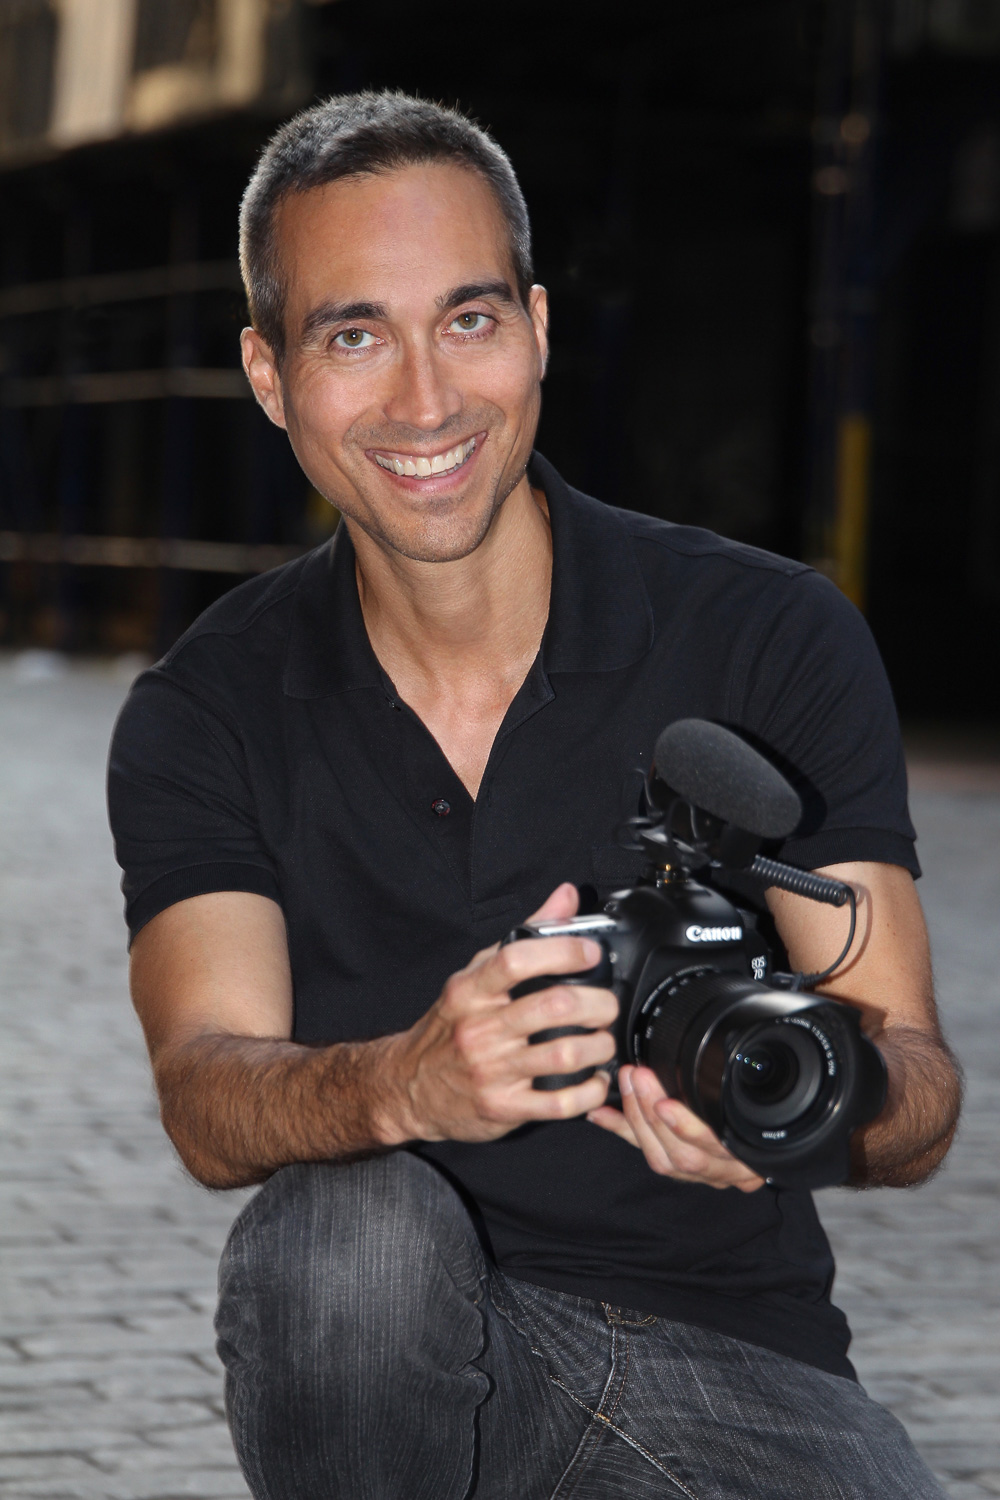 Richard Davis video producer, shooter and editor, at Ridavio productions. Also event photography.